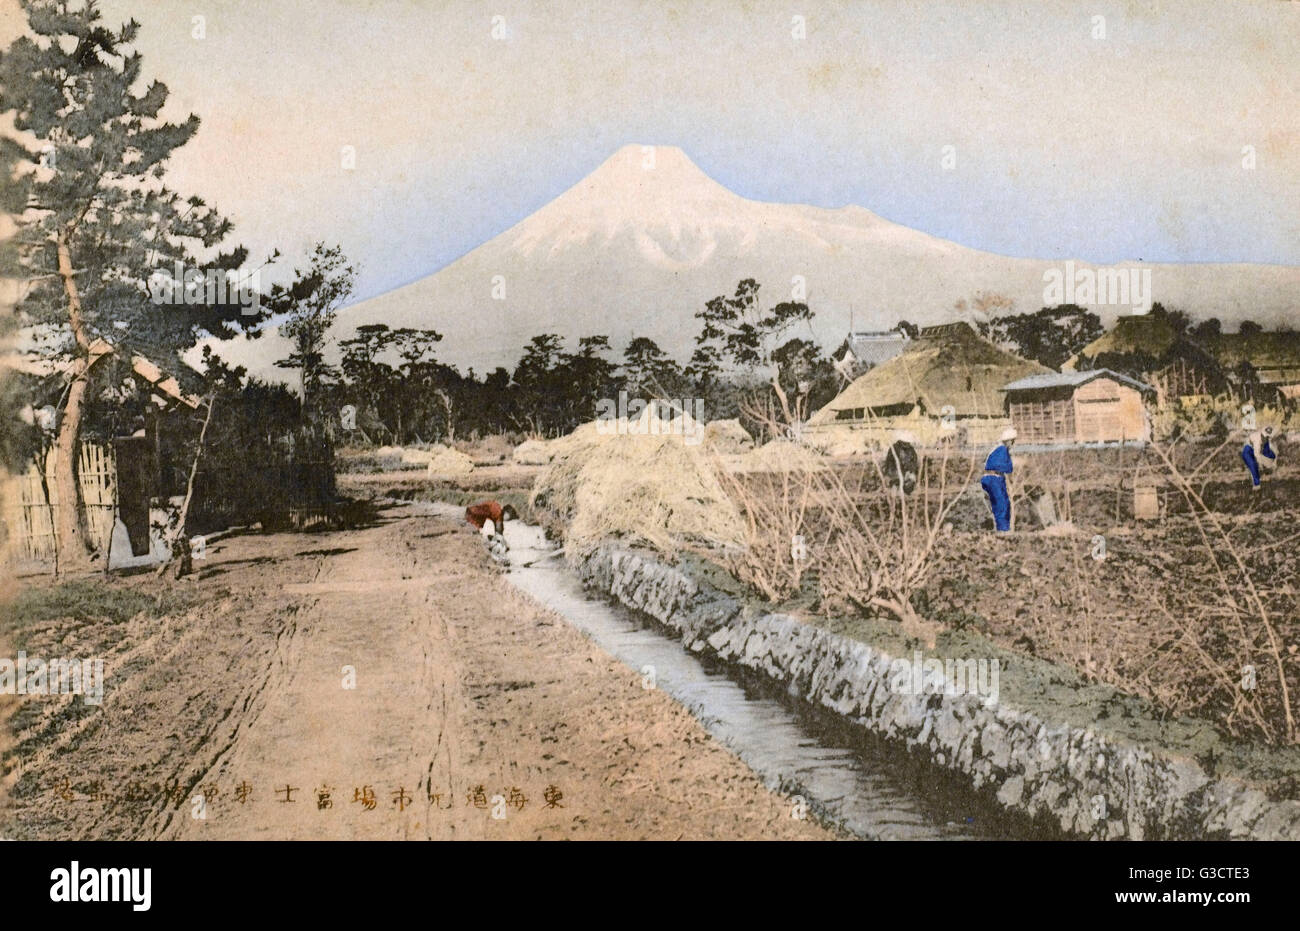 Mount Fuji, Japan - with a village and agricultural workers labouring in the fields in the foreground.     Date: - Stock Image